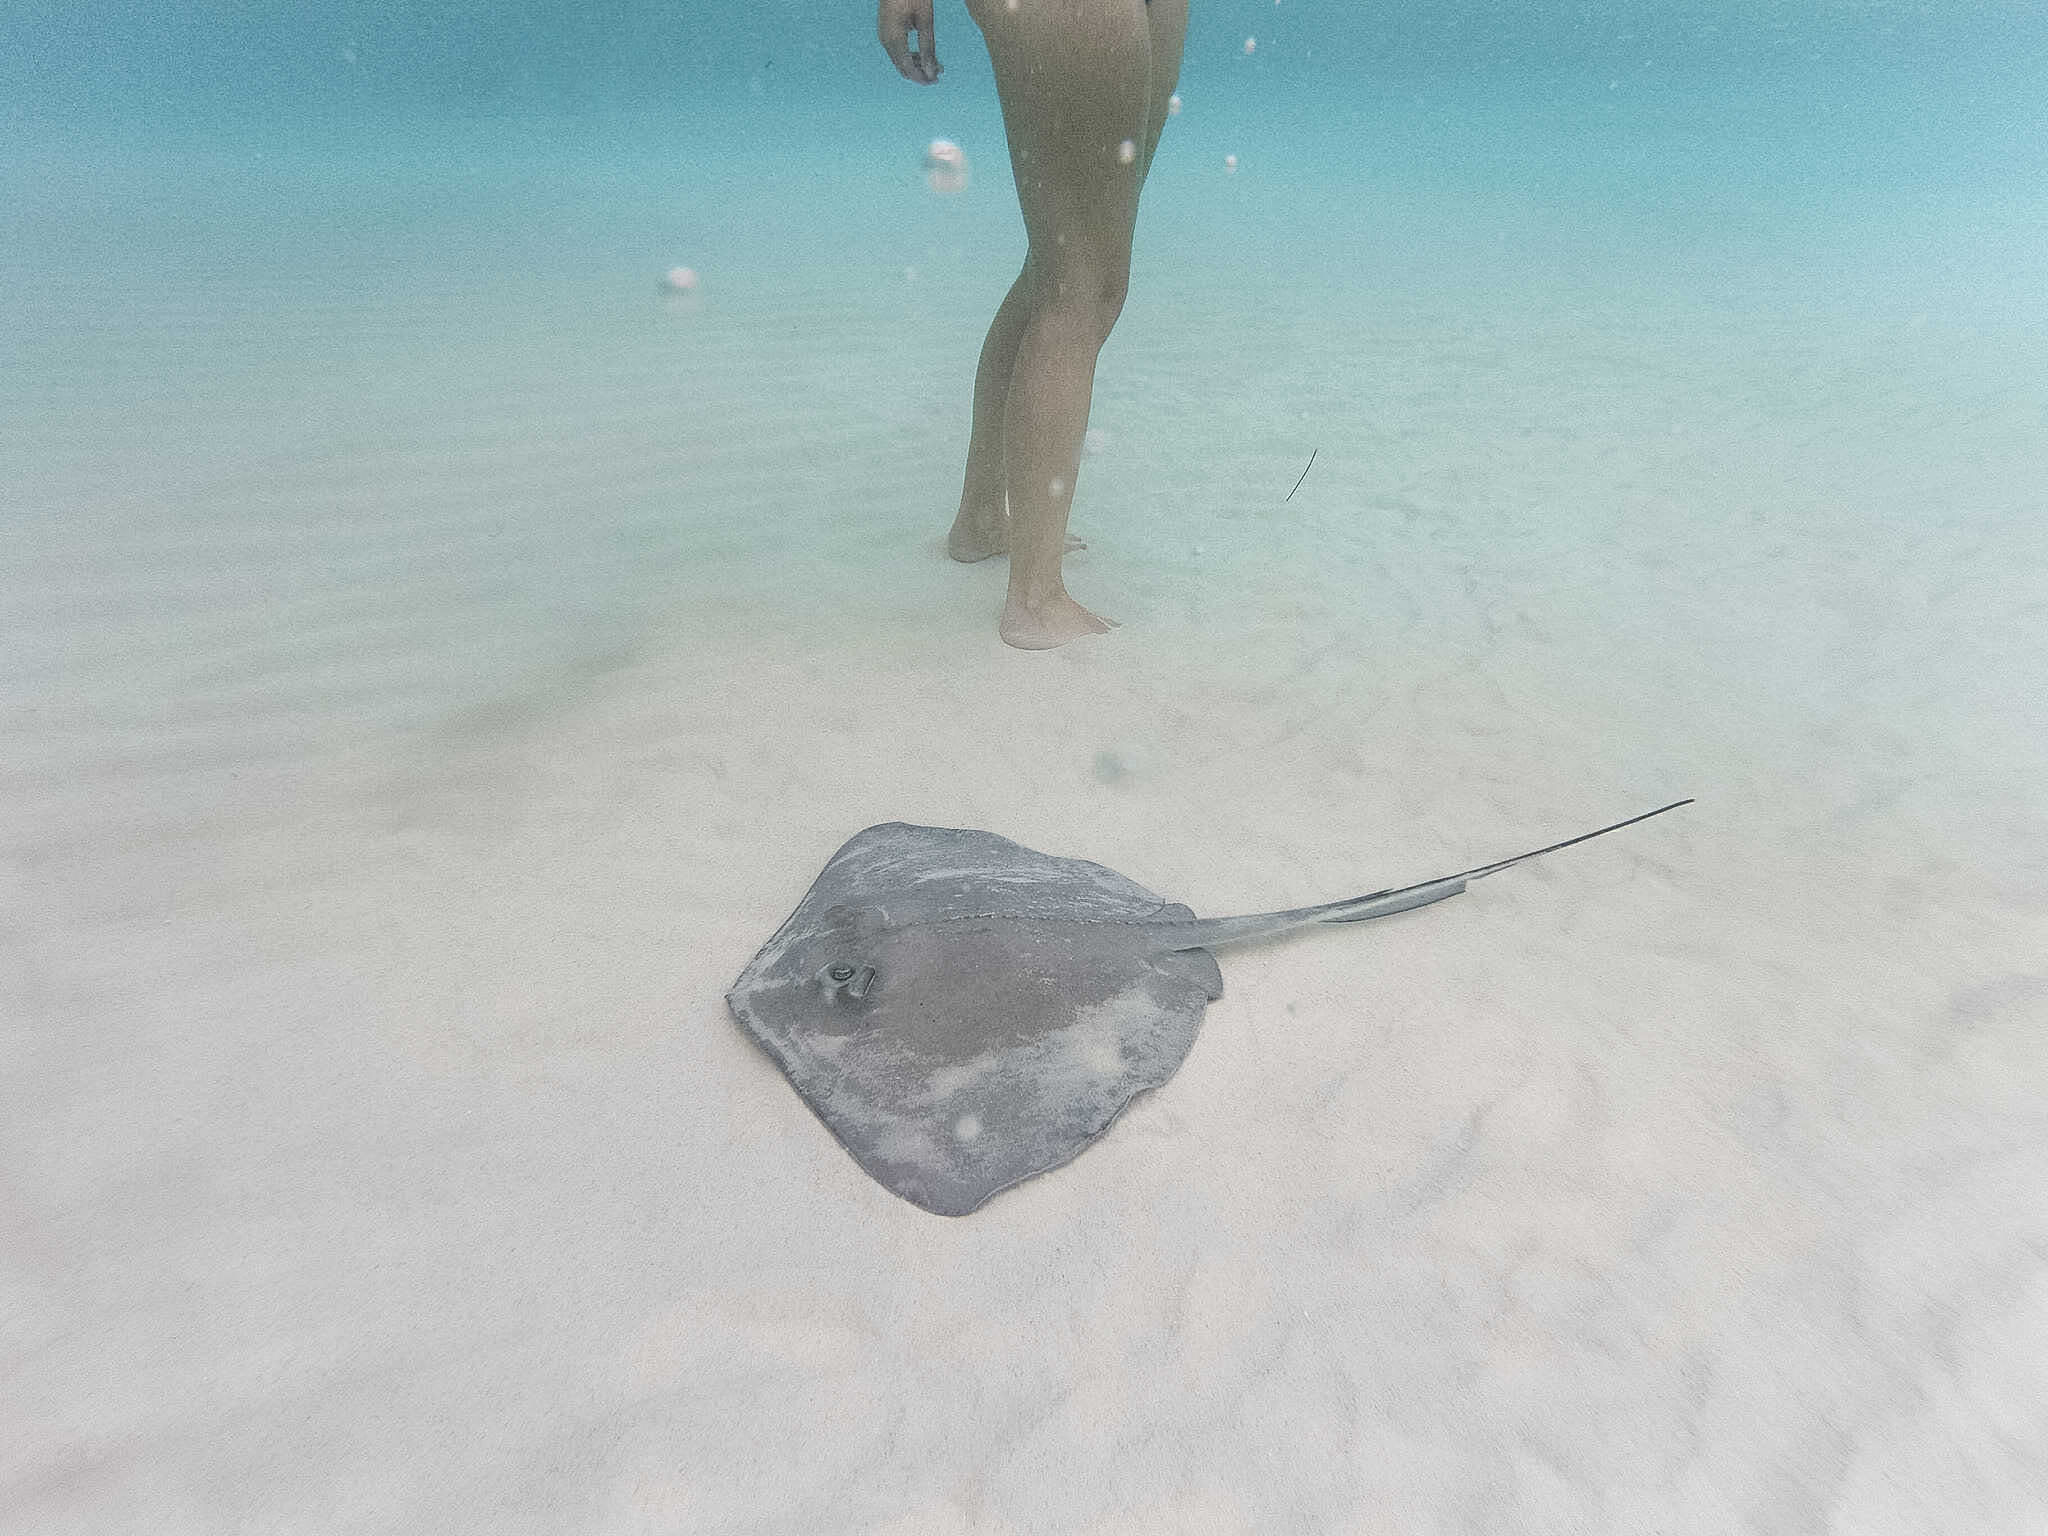 Stingray City tours are the most amazing excursions you'll take in the Cayman Islands. Snorkeling Grand Cayman will not only introduce you to stingrays, but can also take you to the amazing Starfish Point Grand Cayman! Spend the day in the middle of the ocean, exploring the Caribbean waters that make the Cayman Islands so special! #grandcaymanisland #caymansislands #stingraycitygrandcayman #snorkeling #caymanislandsthingstodo